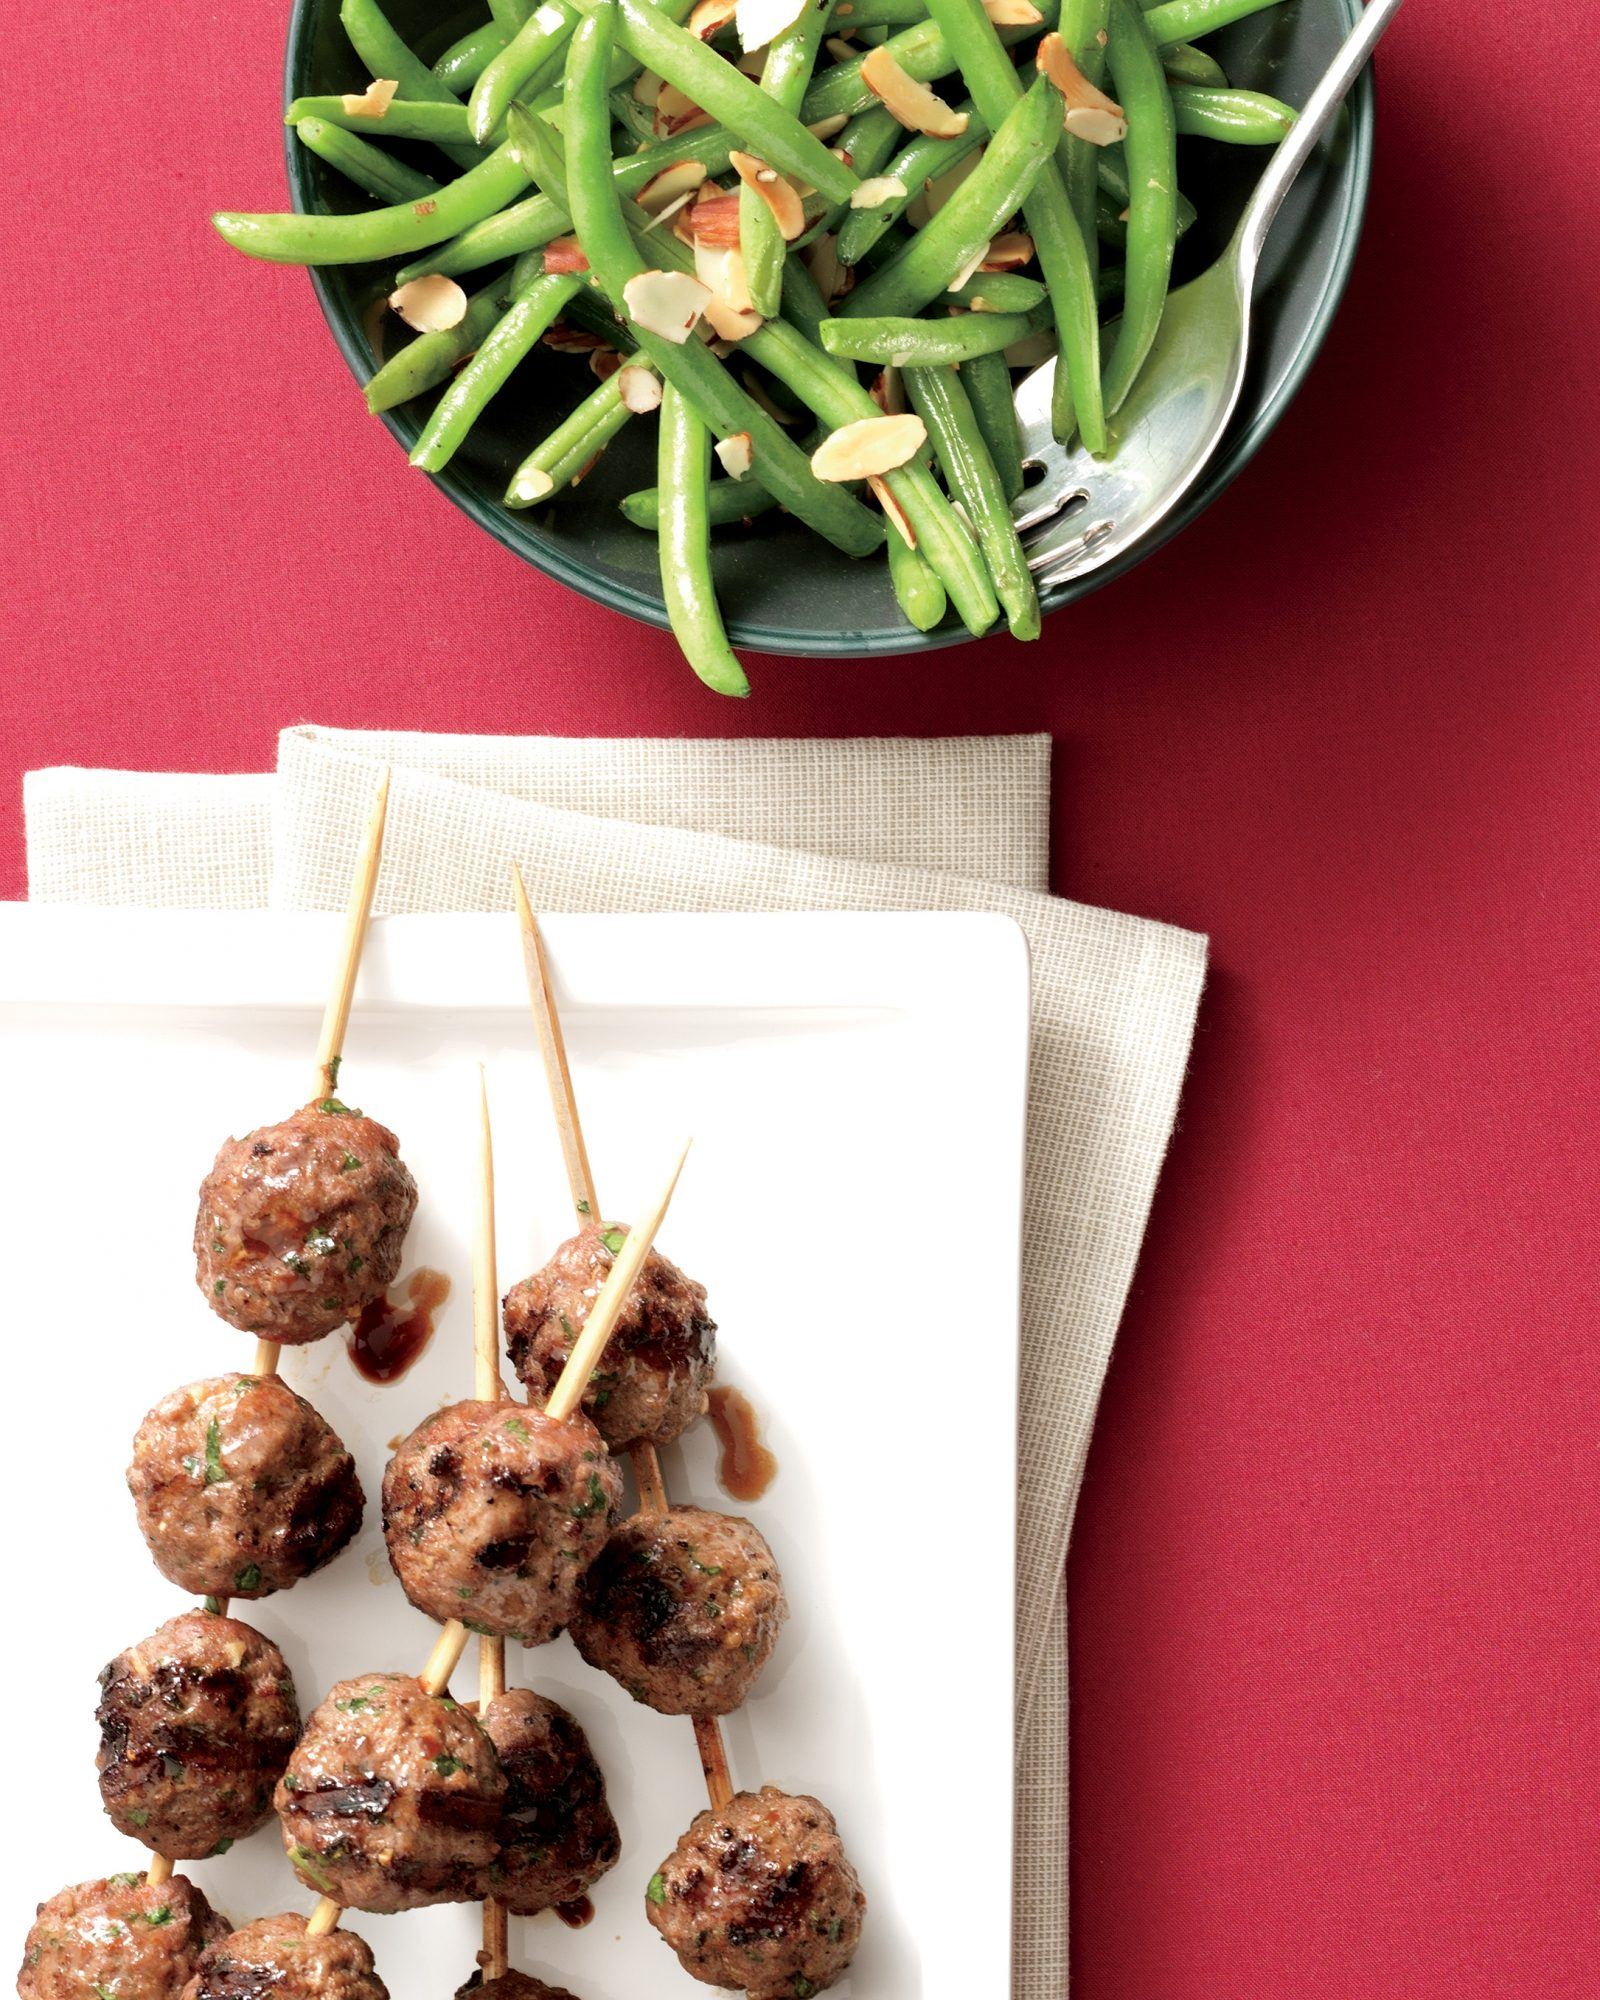 beef-kebabs-roasted-green-beans-almonds-1110-RR-MP02-01